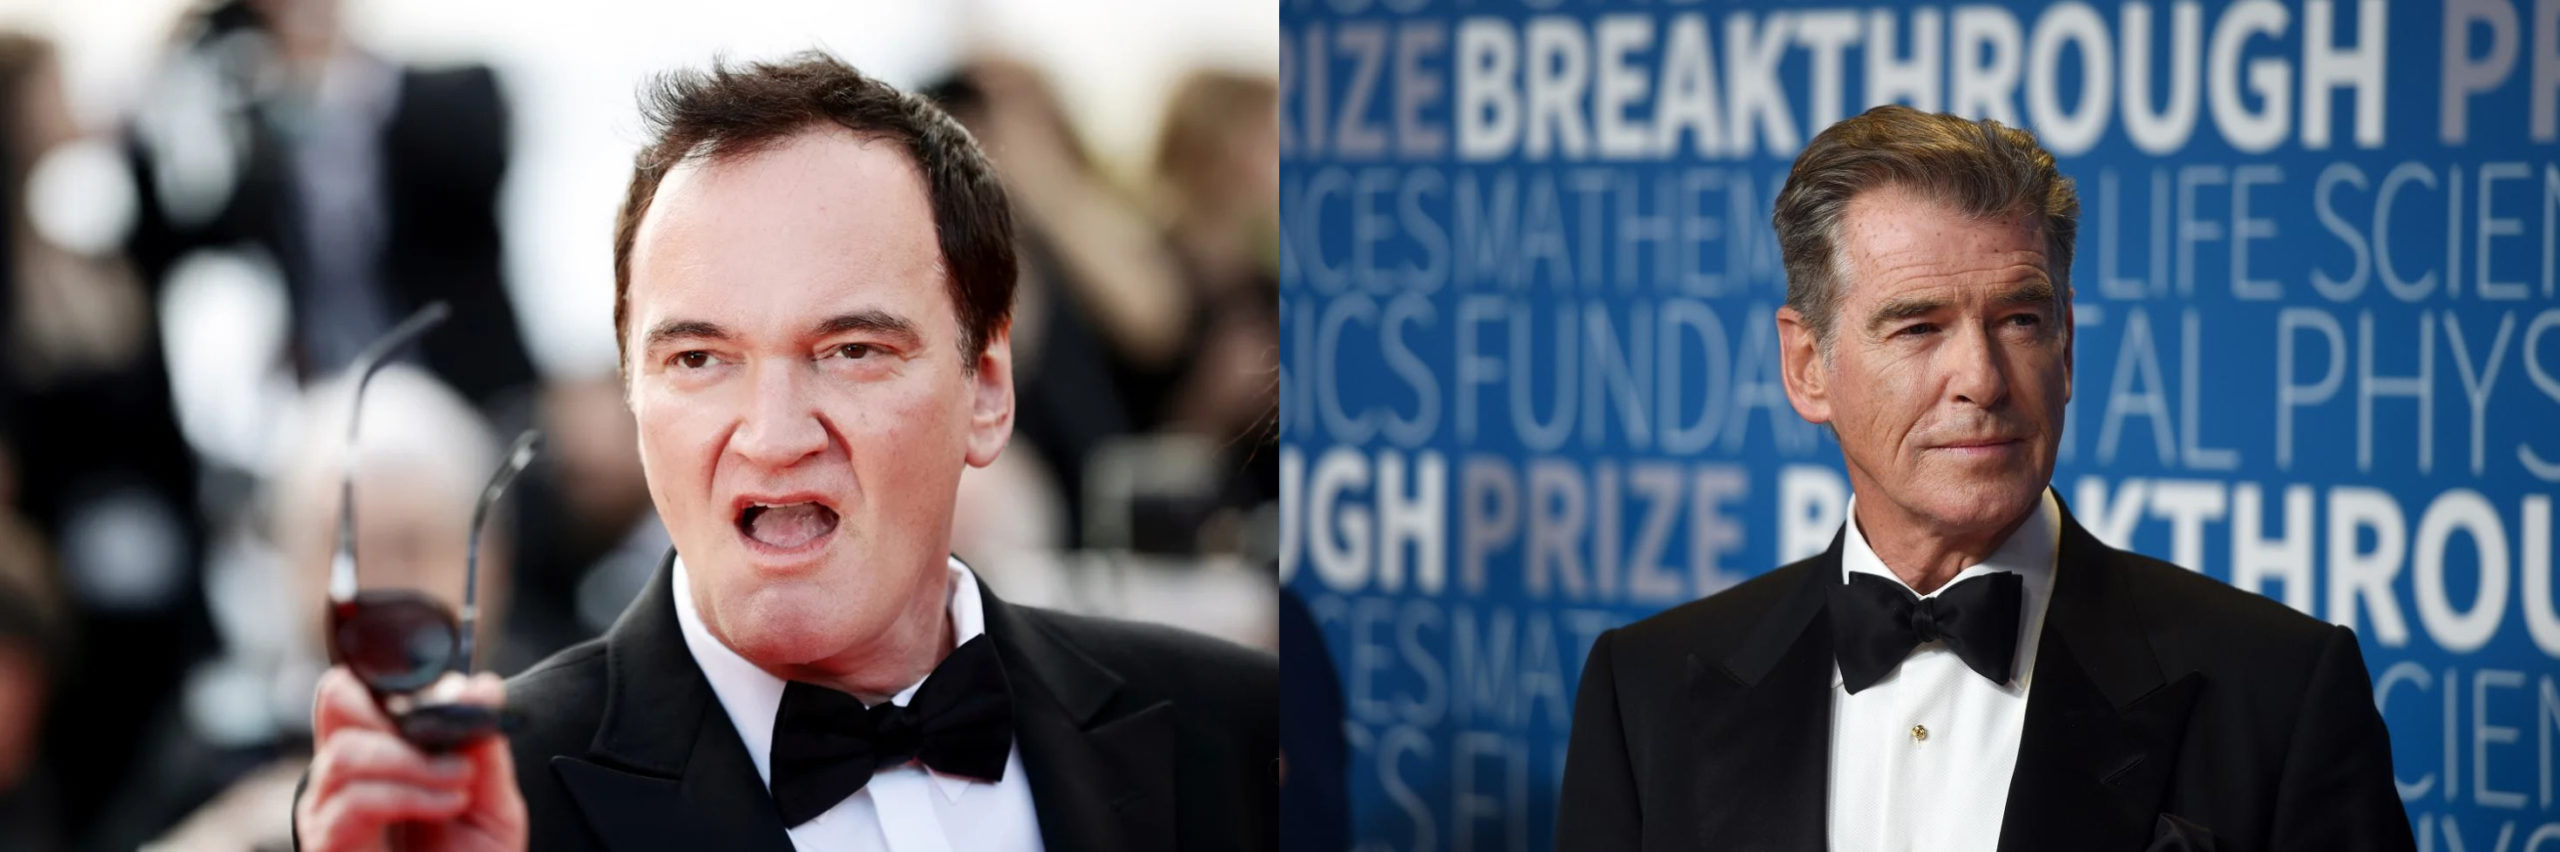 quentin tarantino pierce brosnan james bond scaled